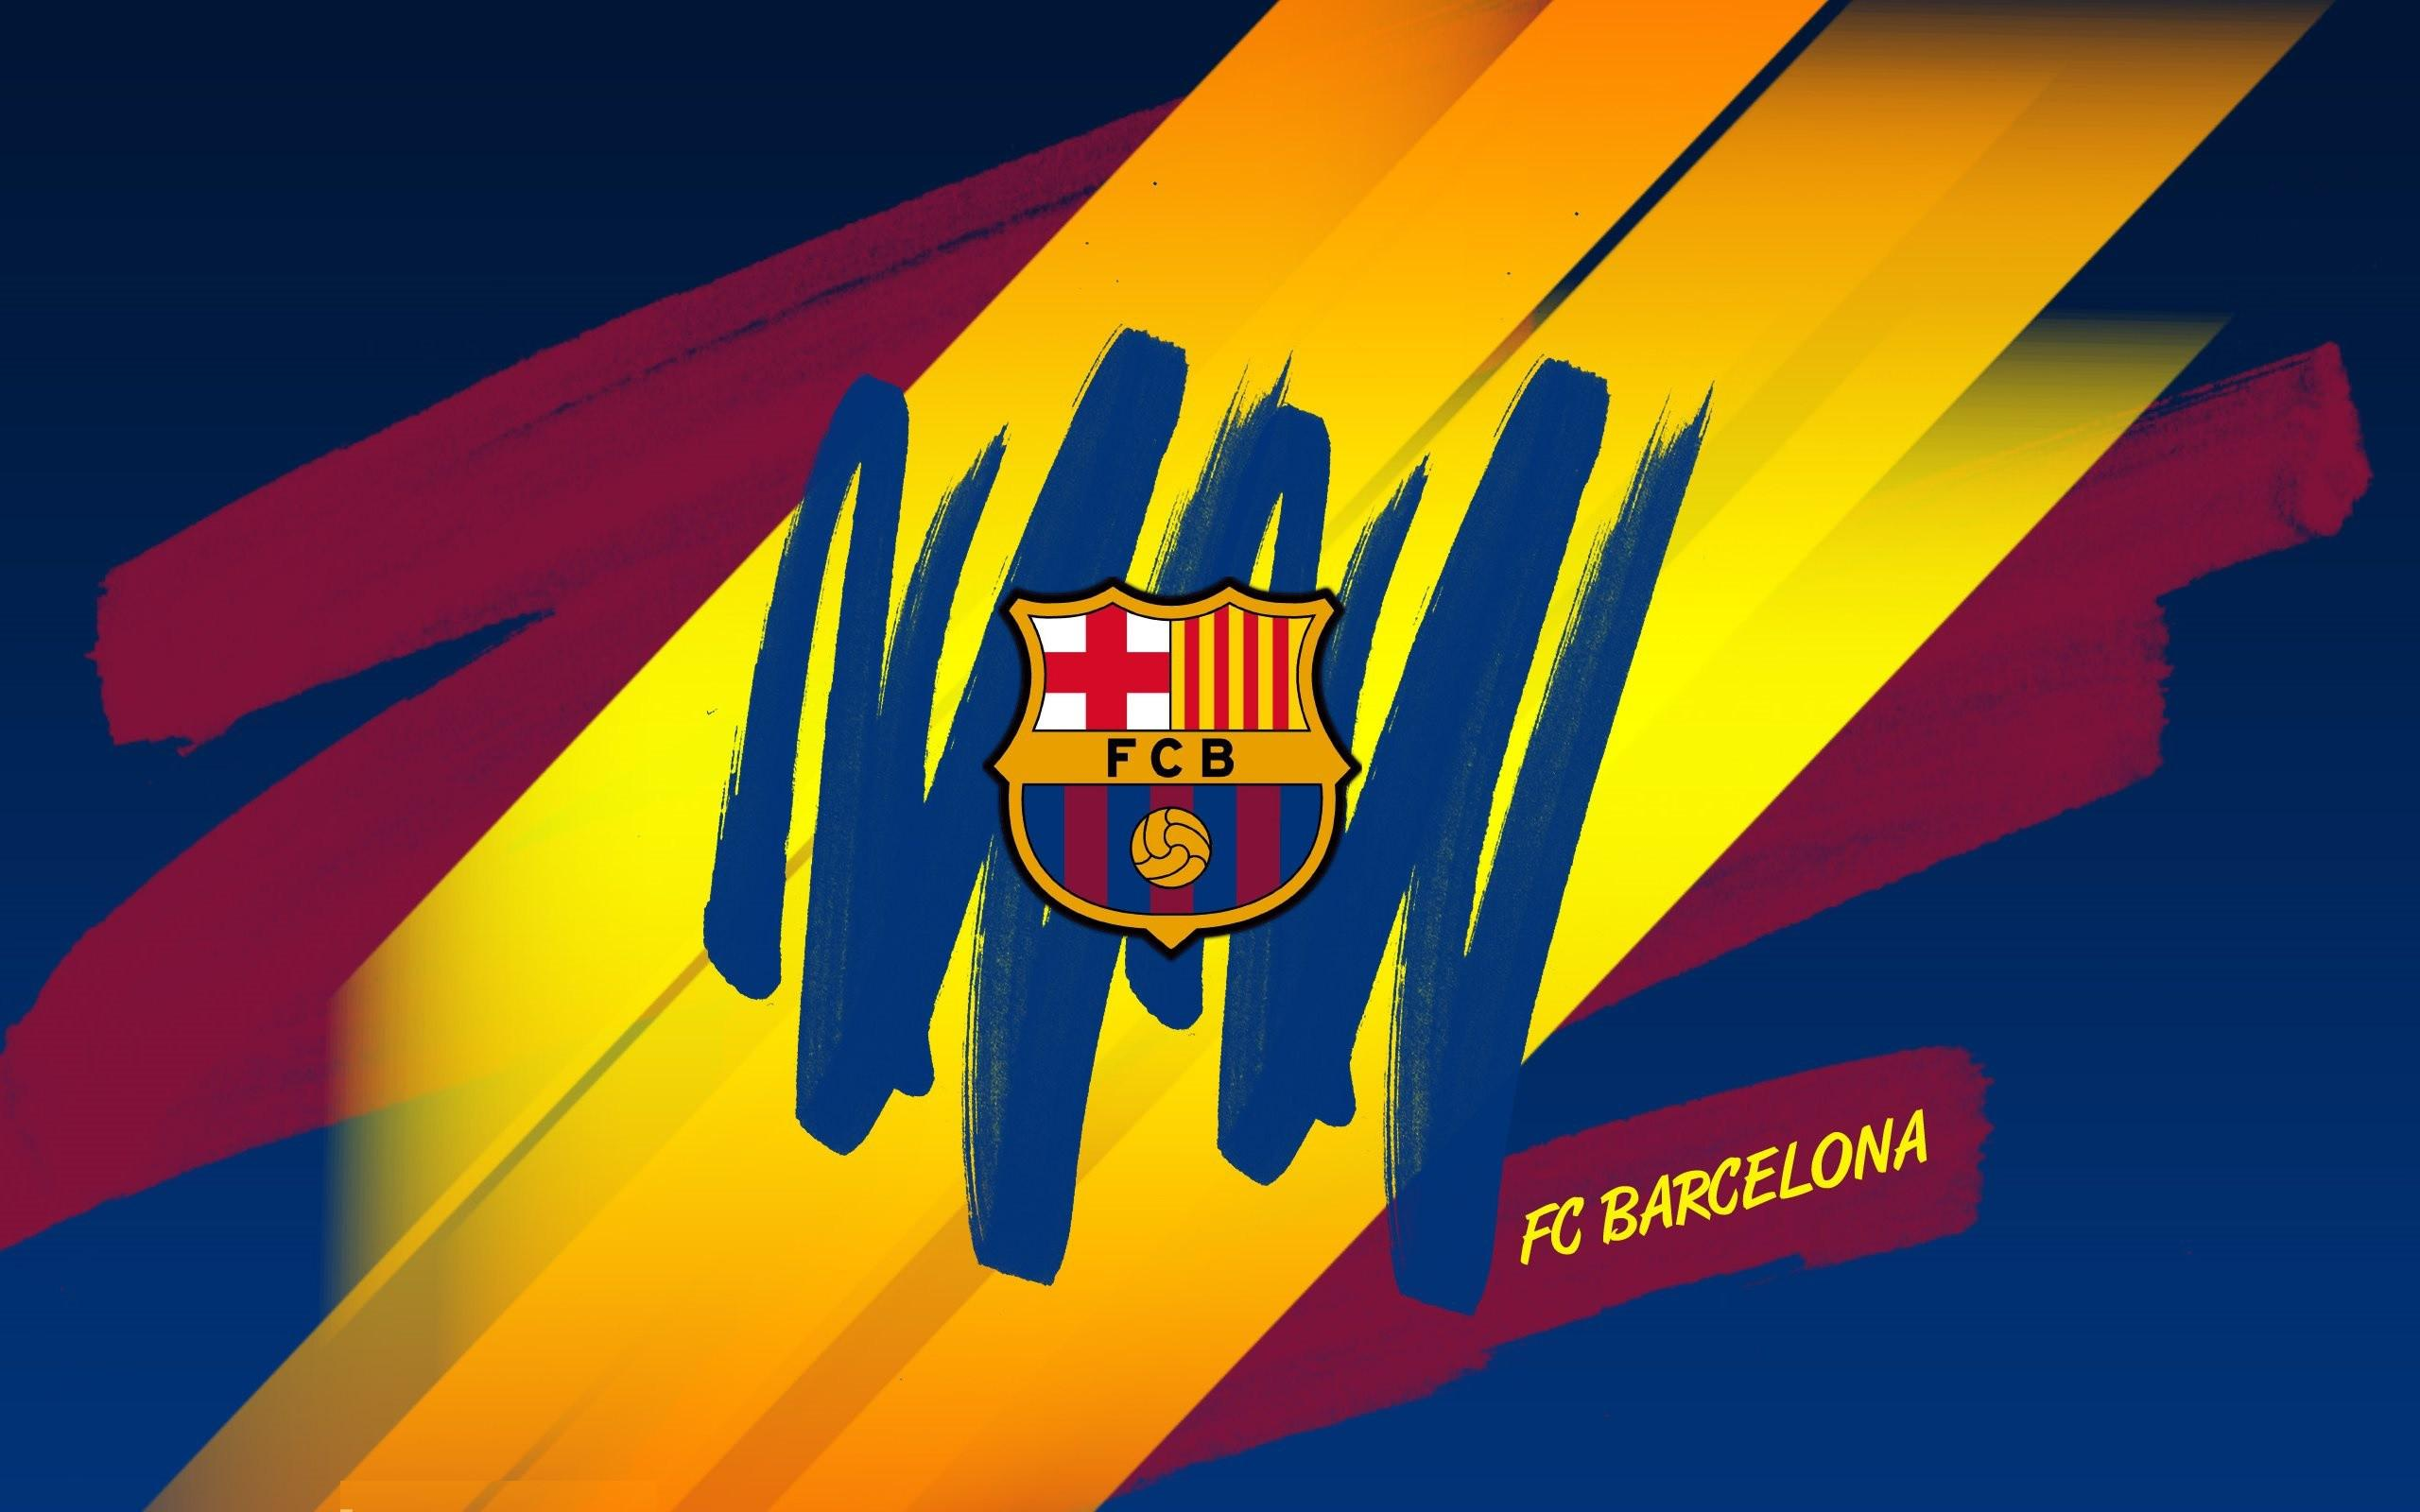 Download Fc Barcelona Wallpaper Mobile